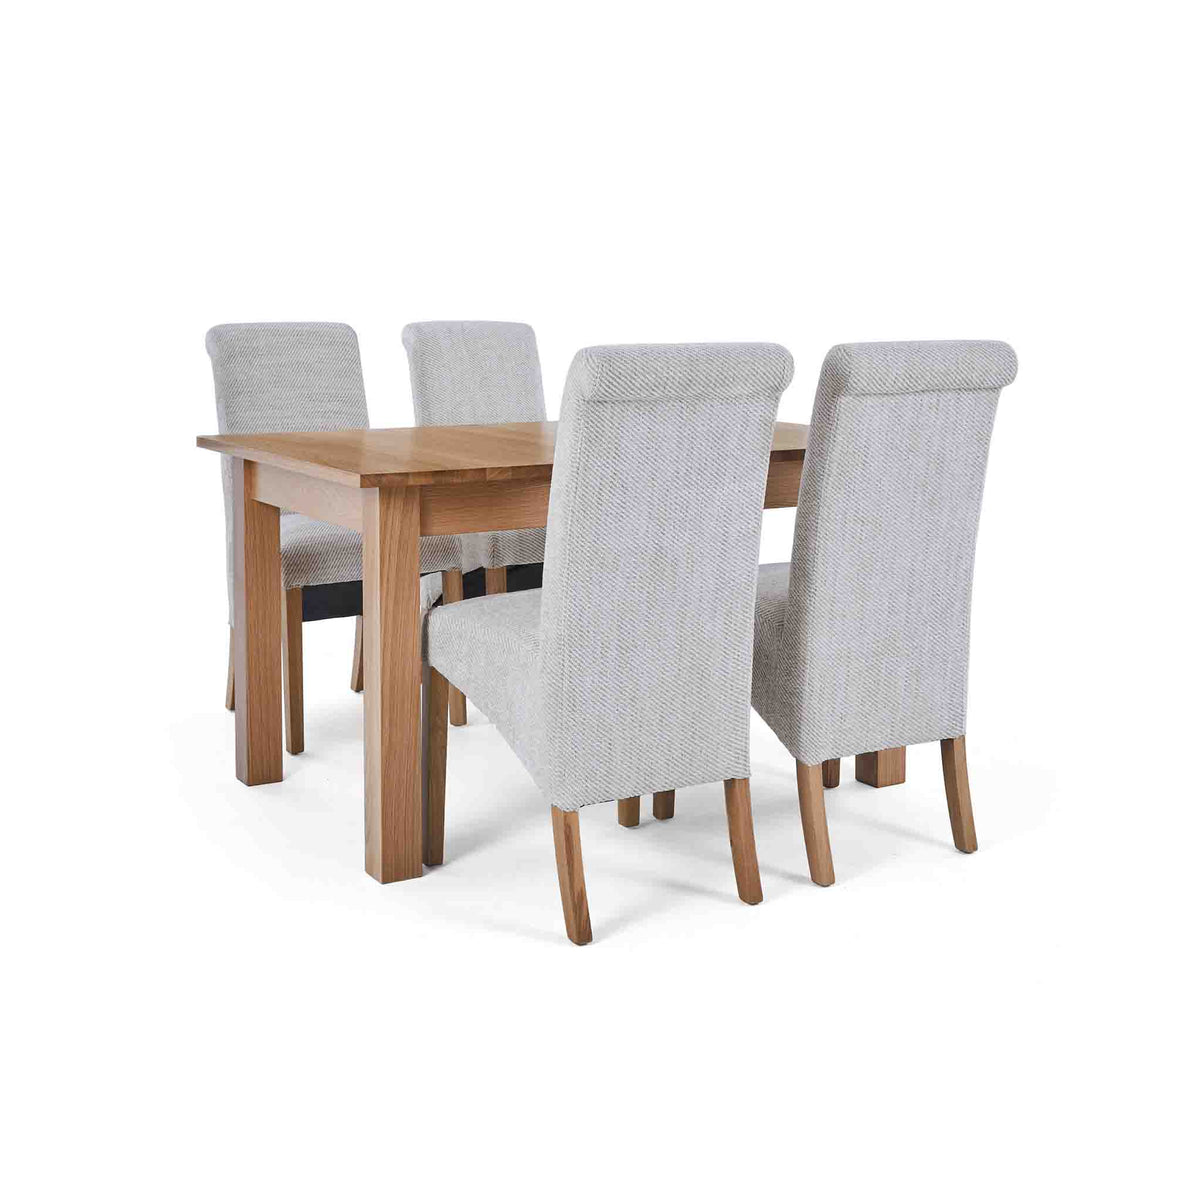 4 Natural Chairs with the closed Falmouth Oak Large Extending Dining Table